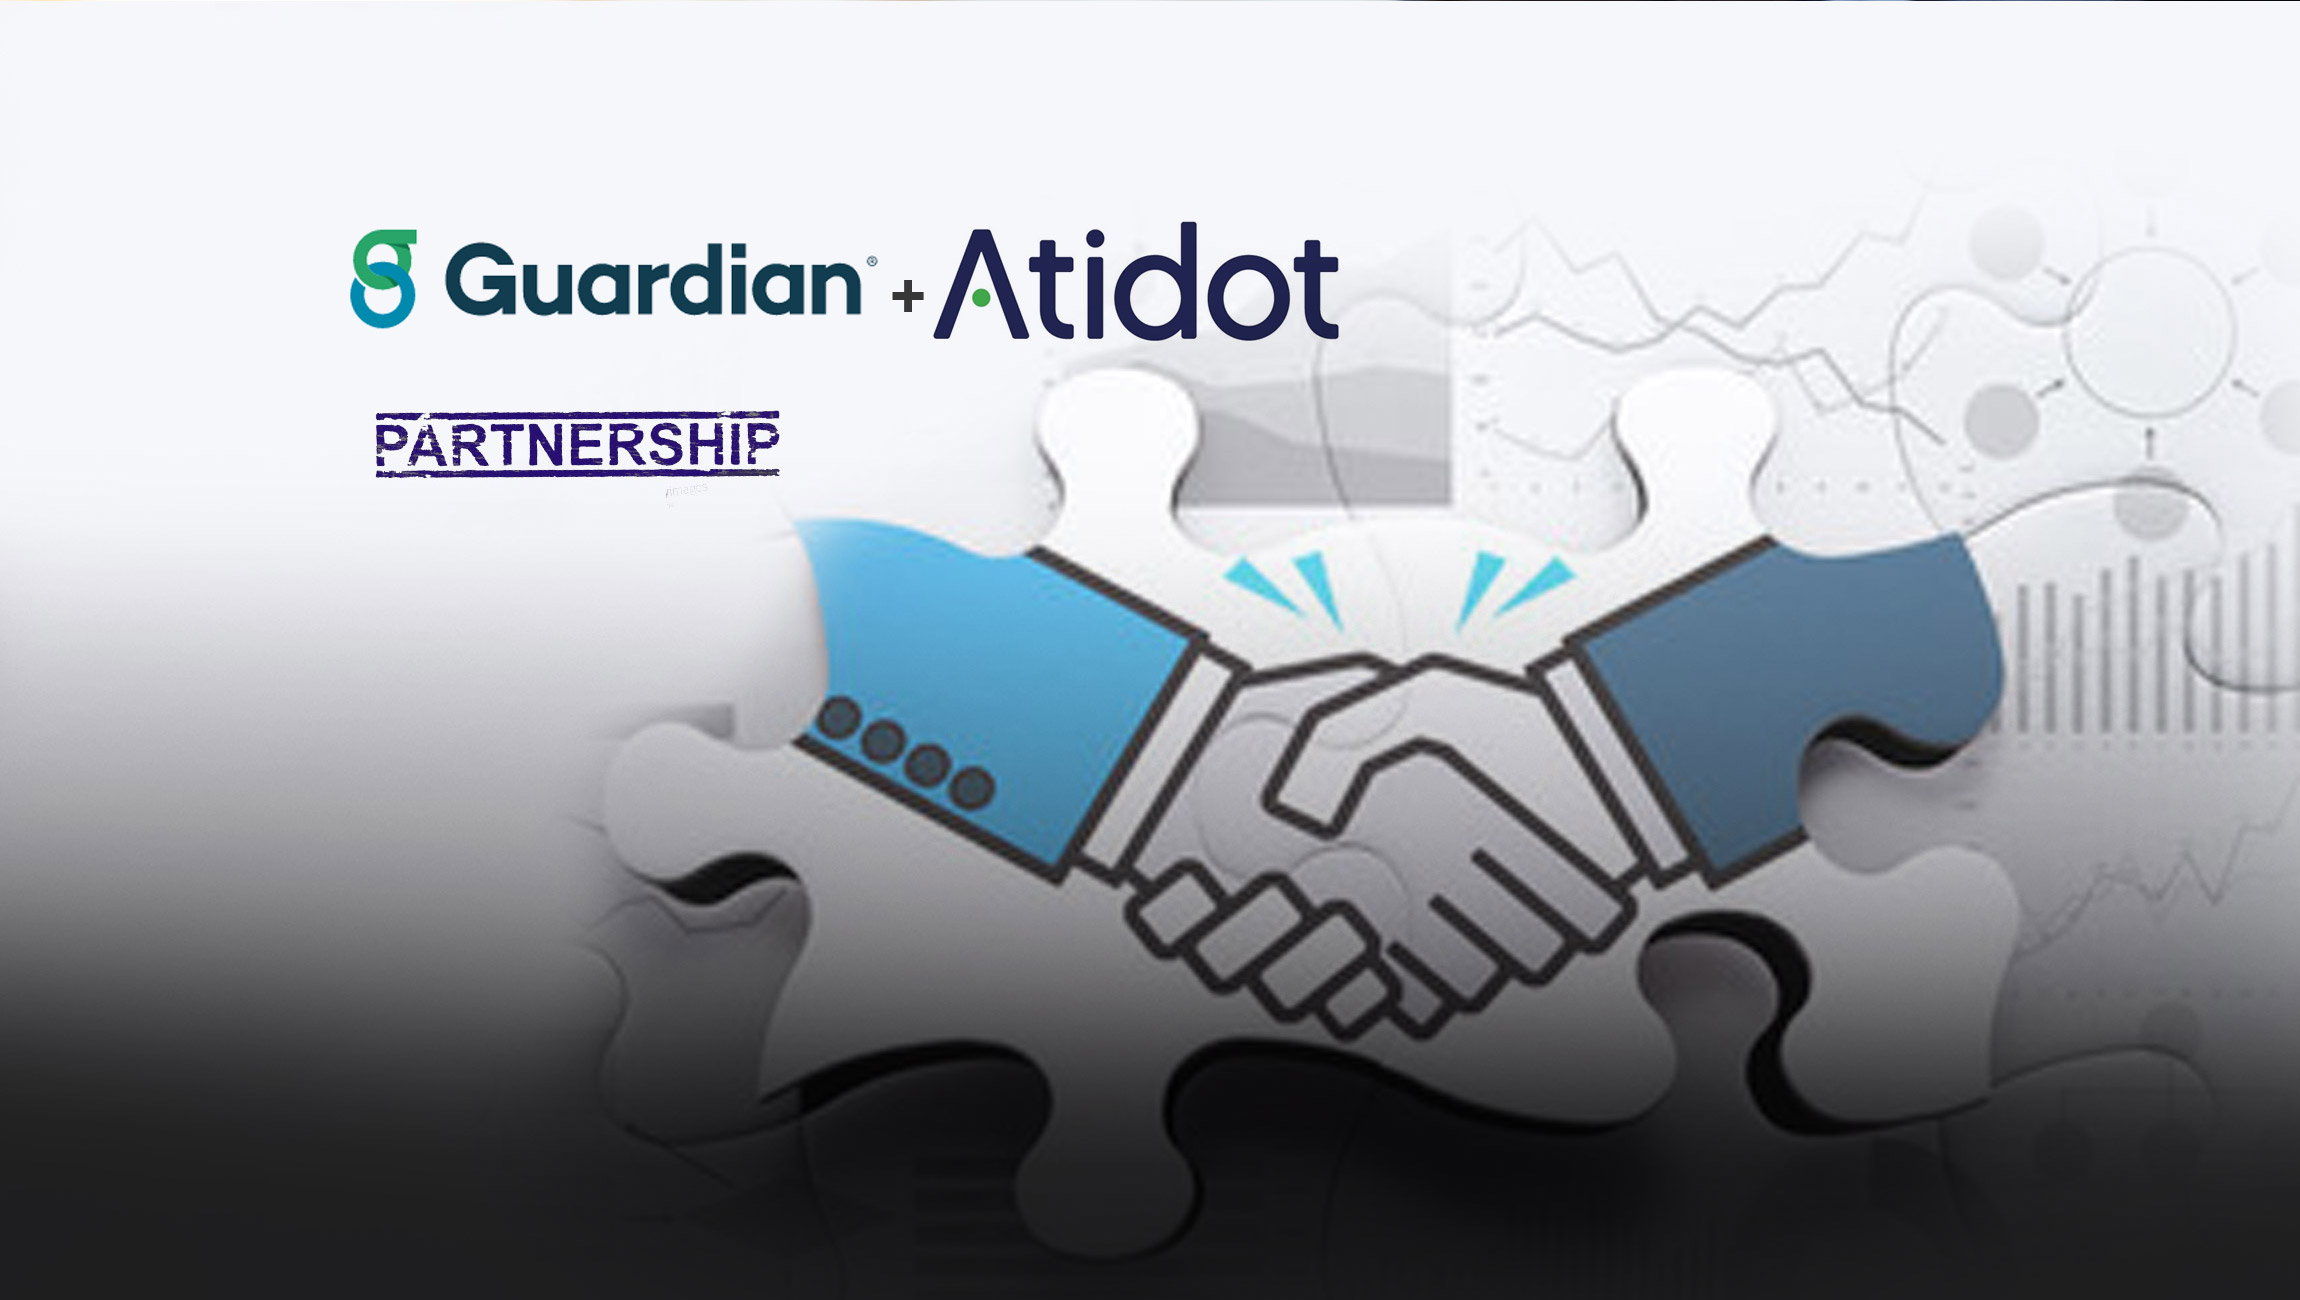 Guardian and Atidot Partner to Create New Insurance Models and Customer Experiences Using Artificial Intelligence and Predictive Analytics